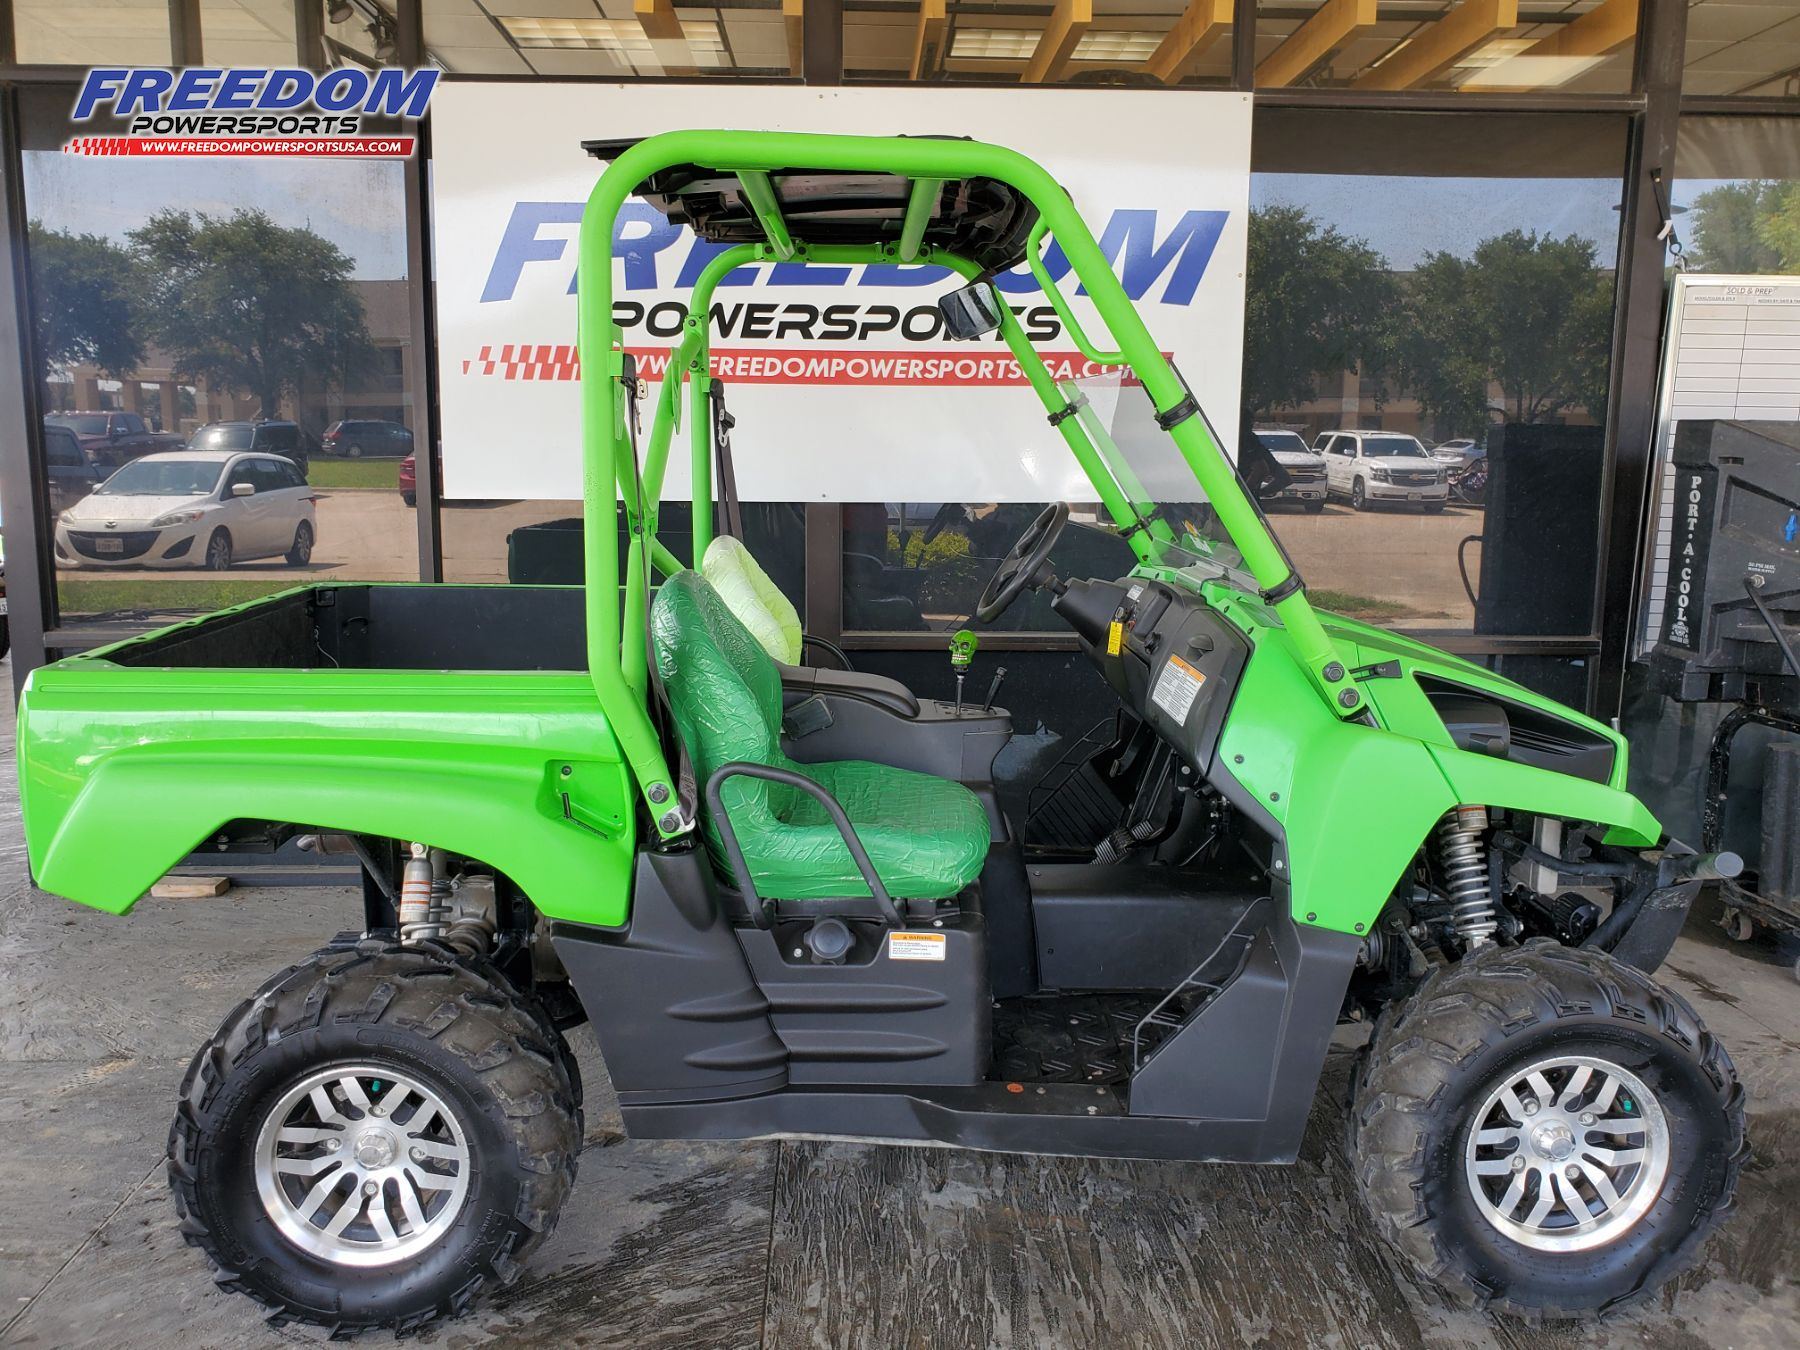 Used Side By Sides For Sale Freedom Powersports